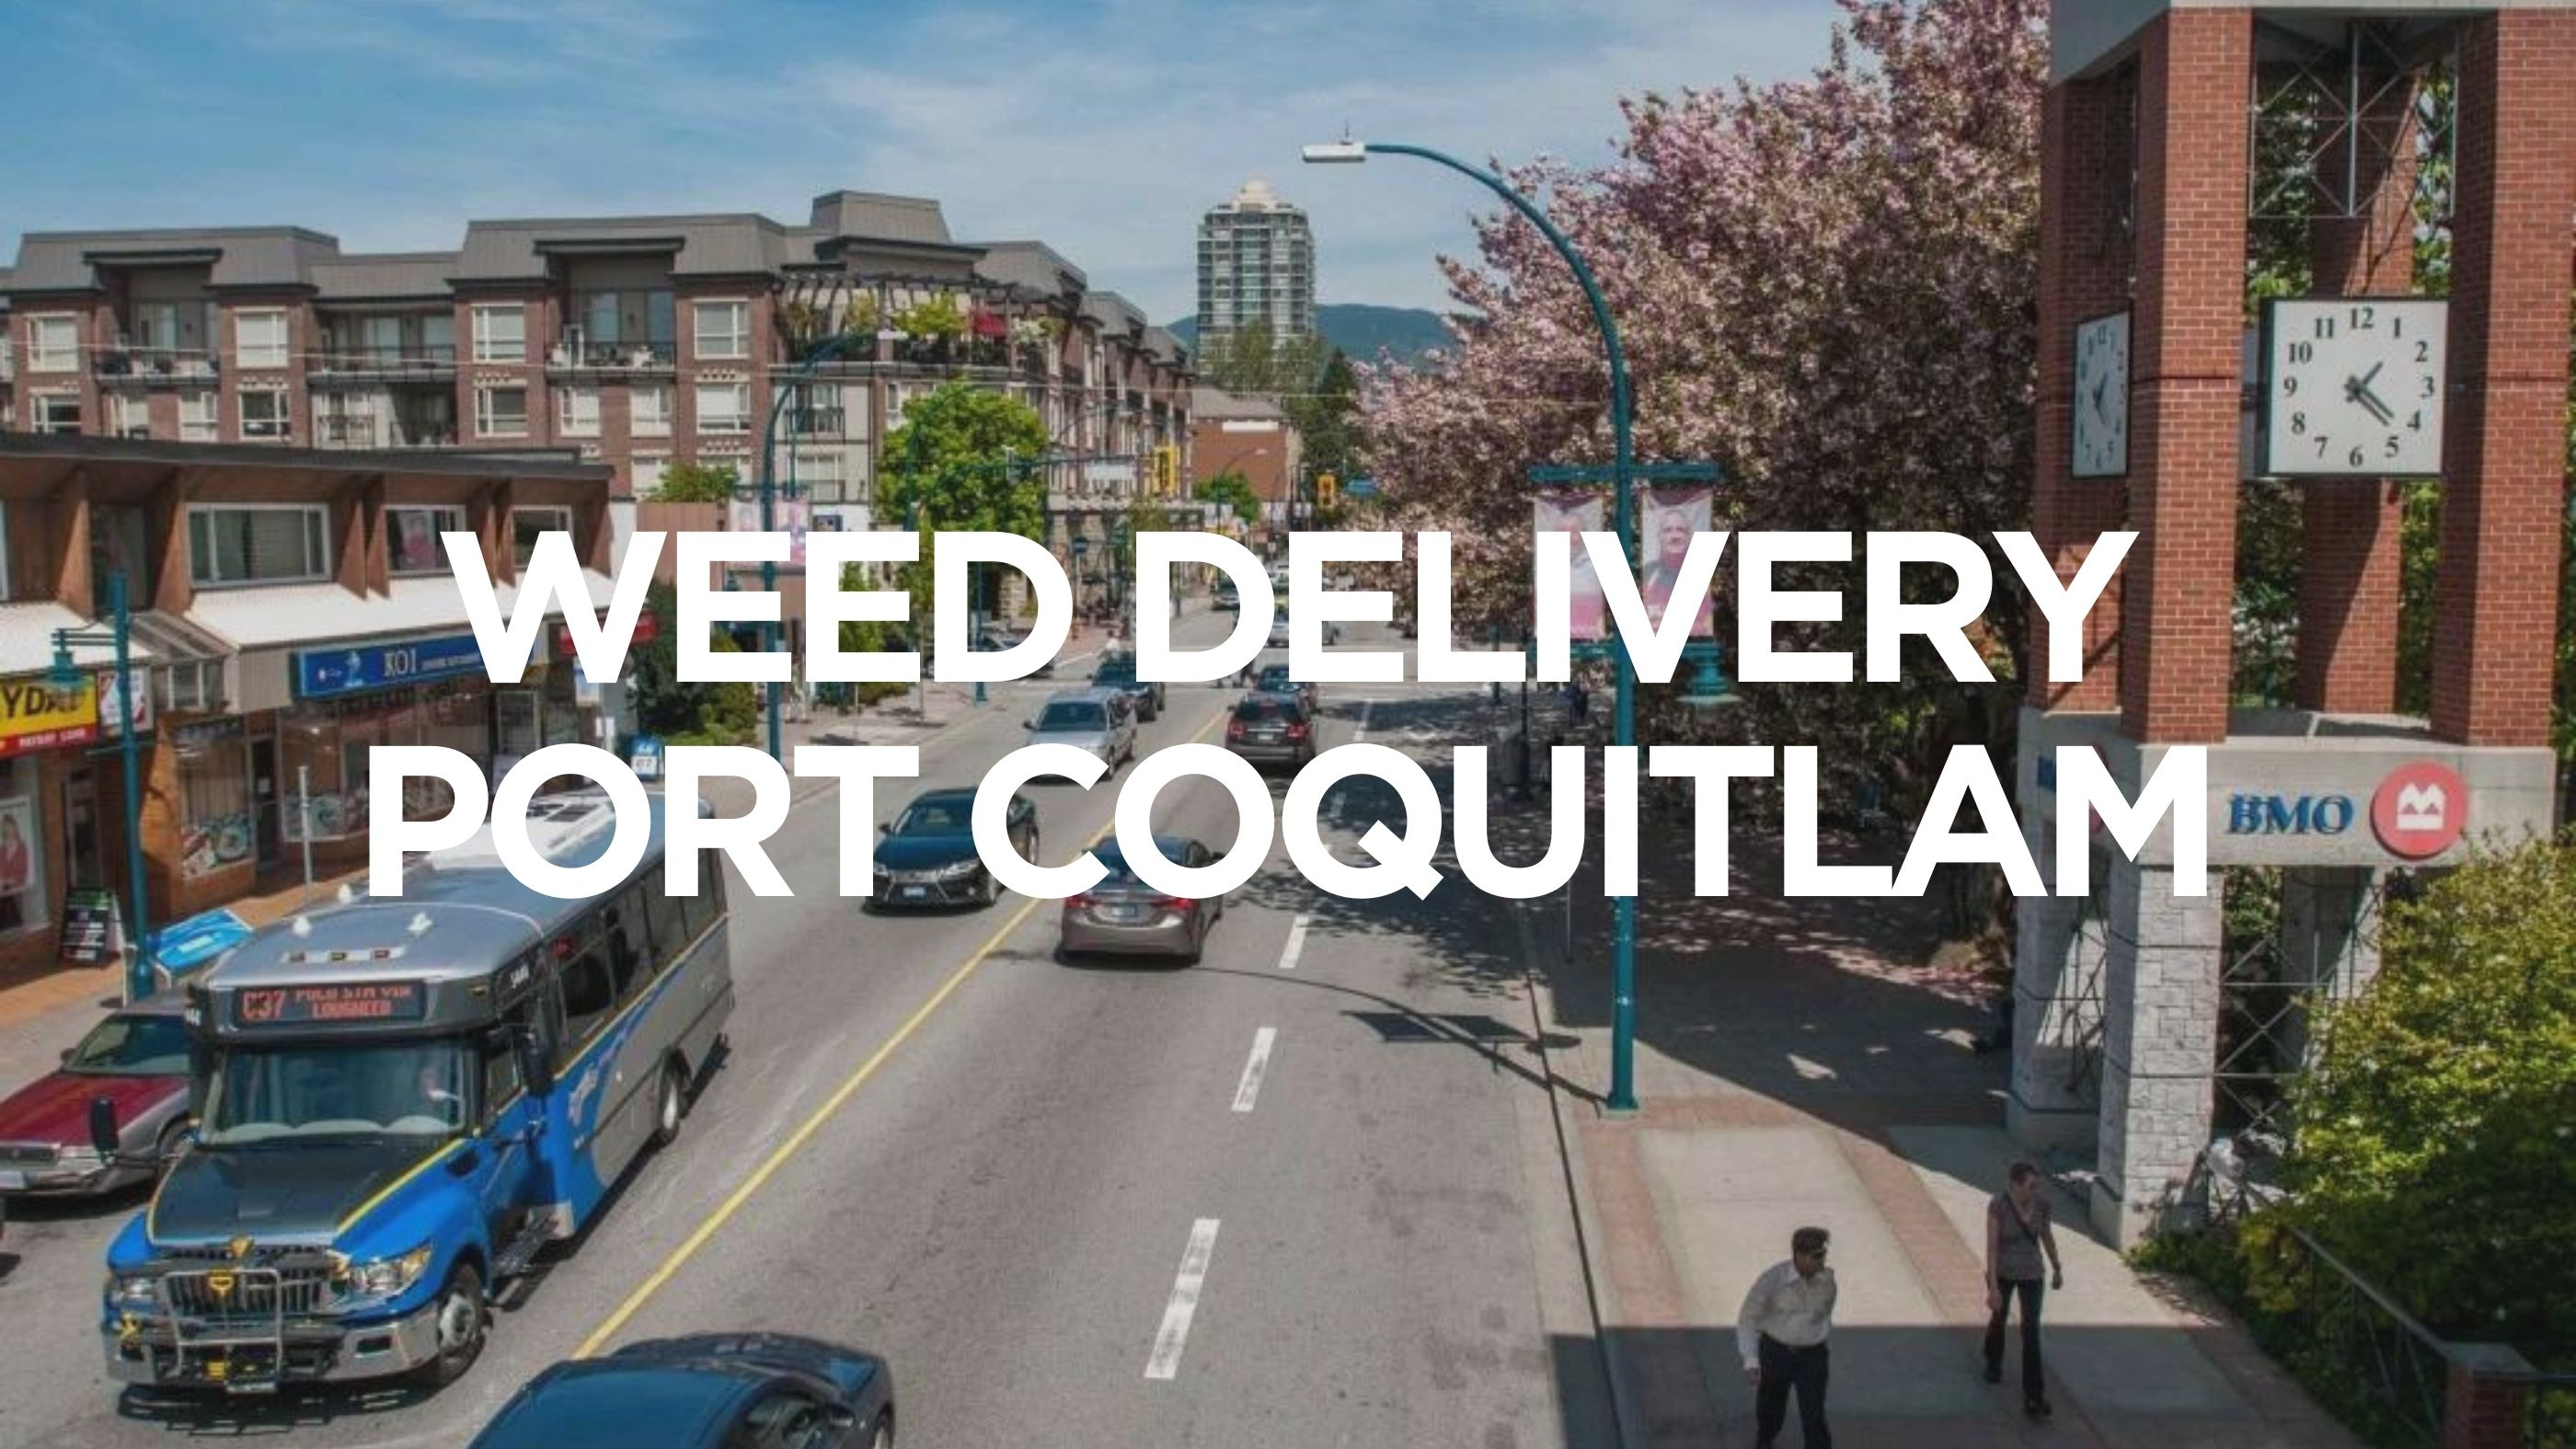 Weed Delivery Port Coquitlam